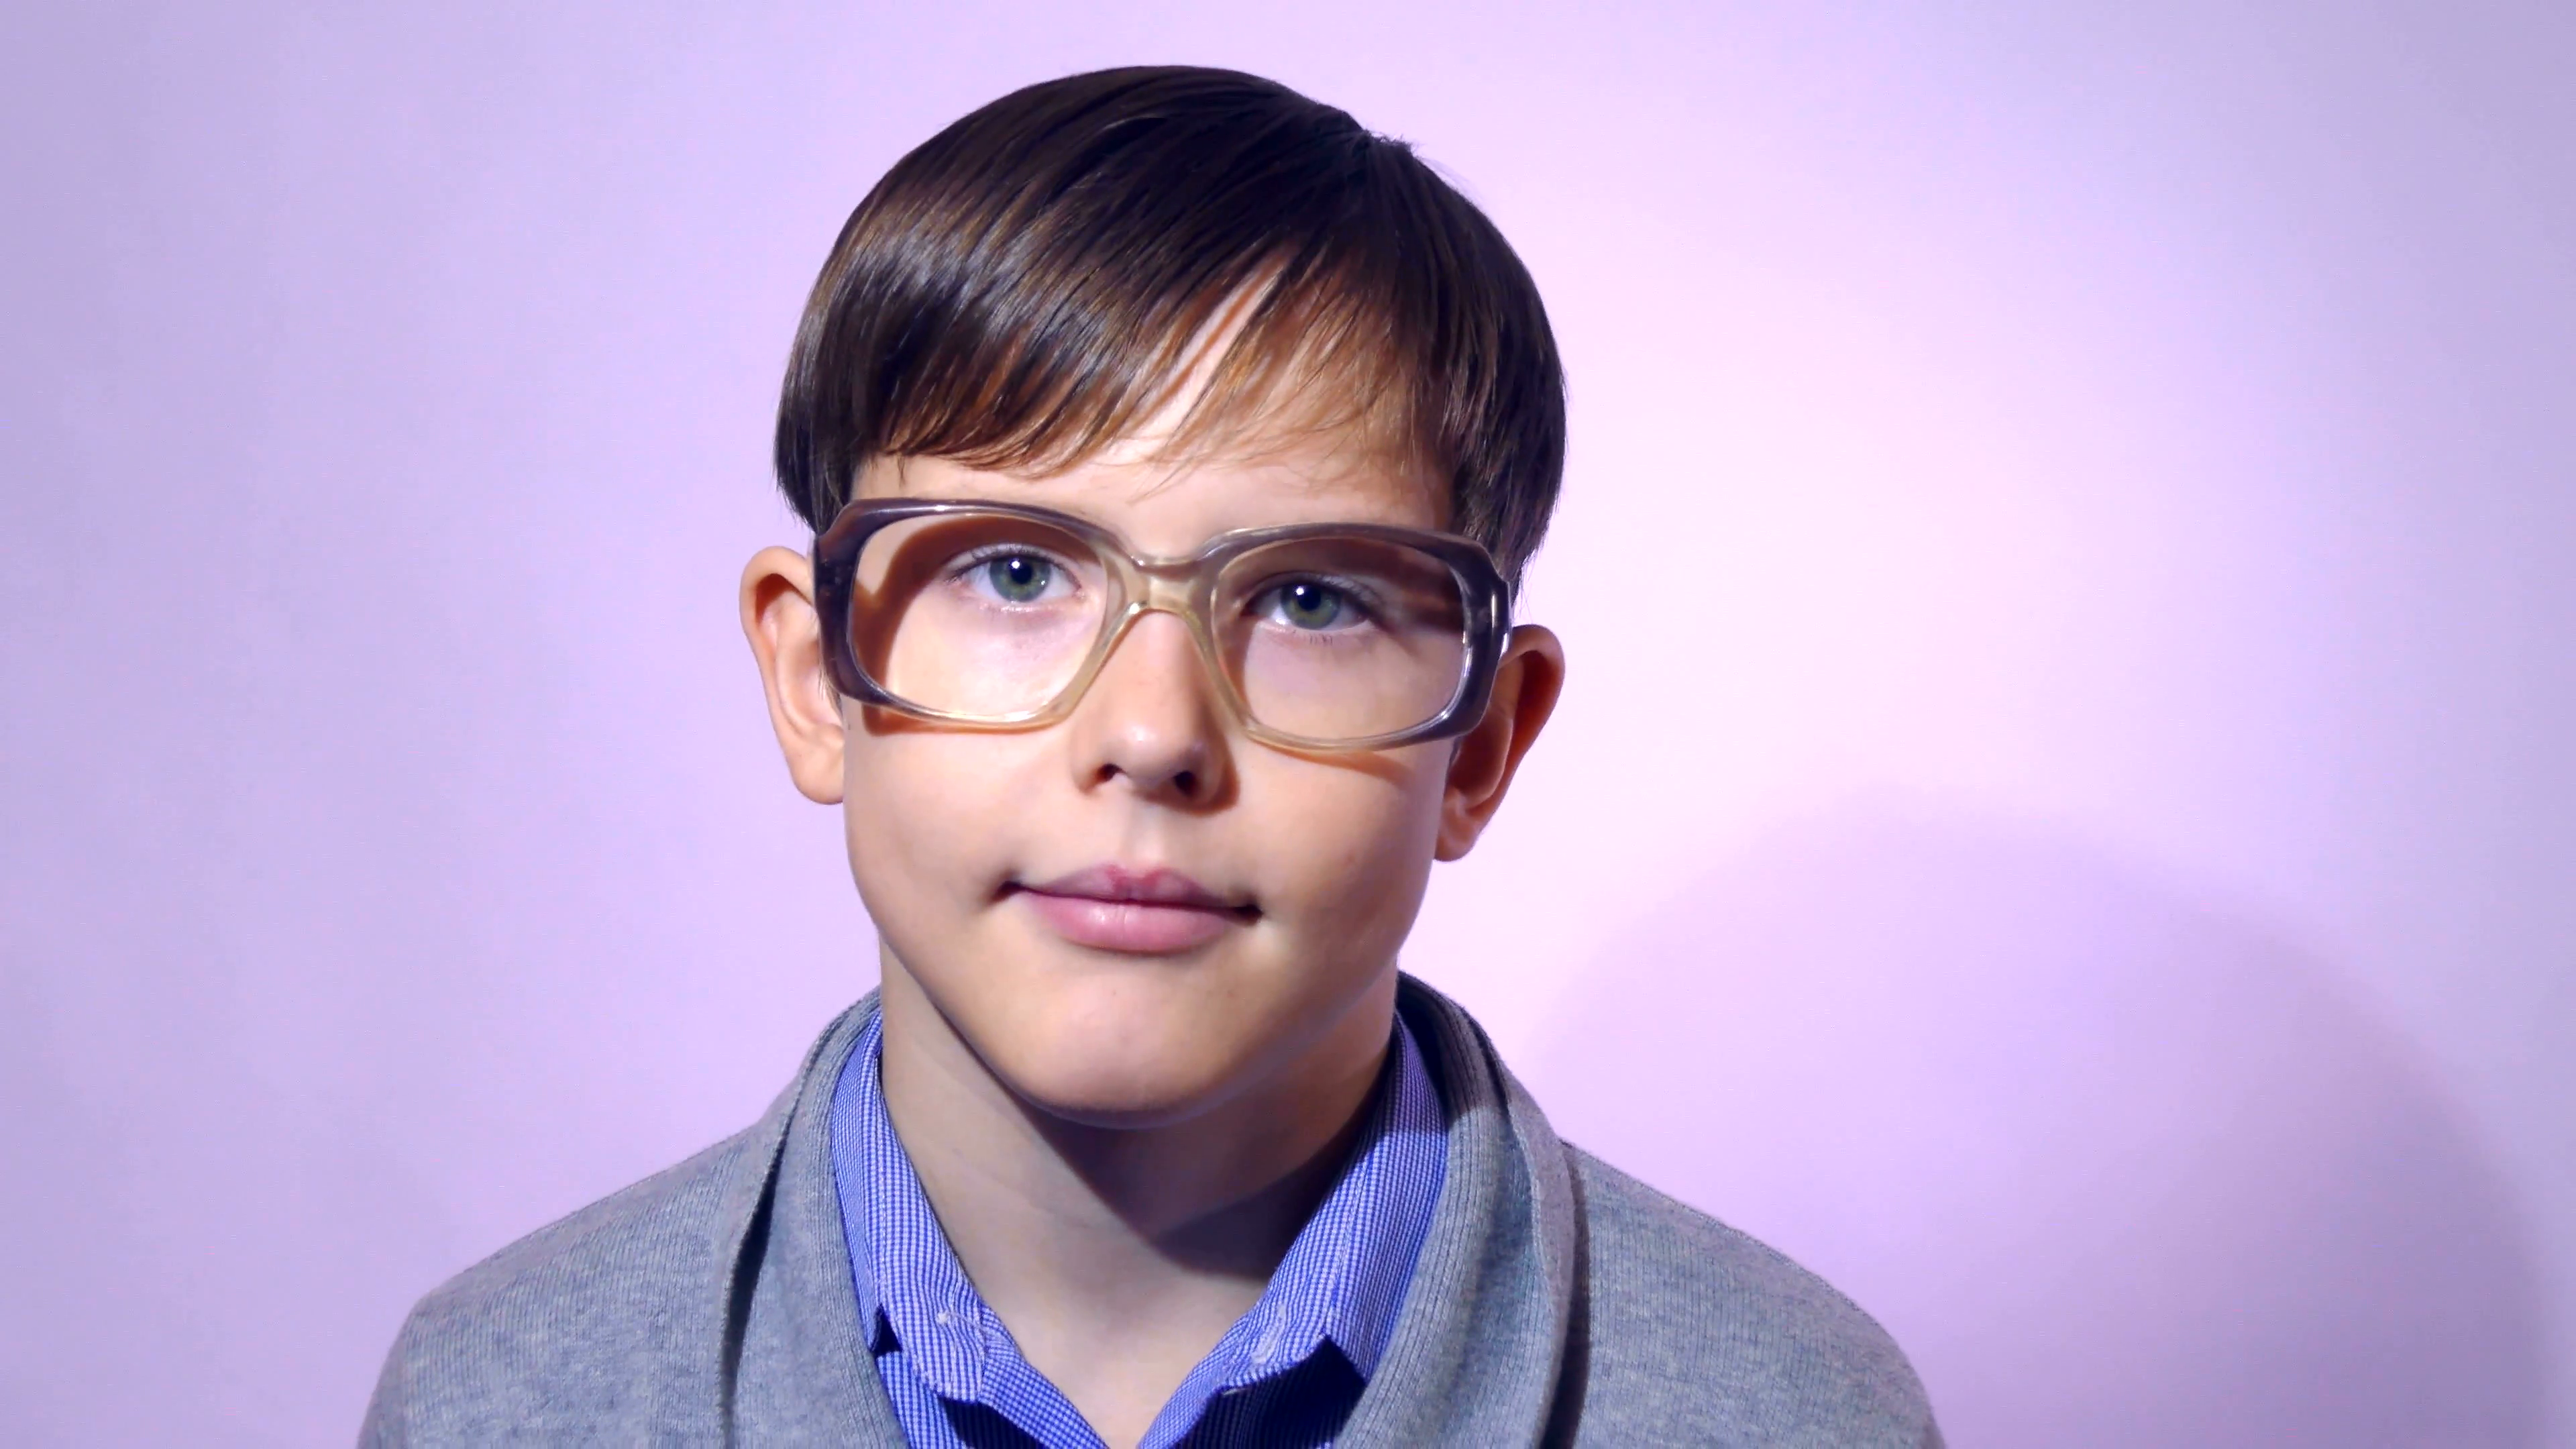 Portrait of boy teenager schoolboy nerd glasses on purple background ...